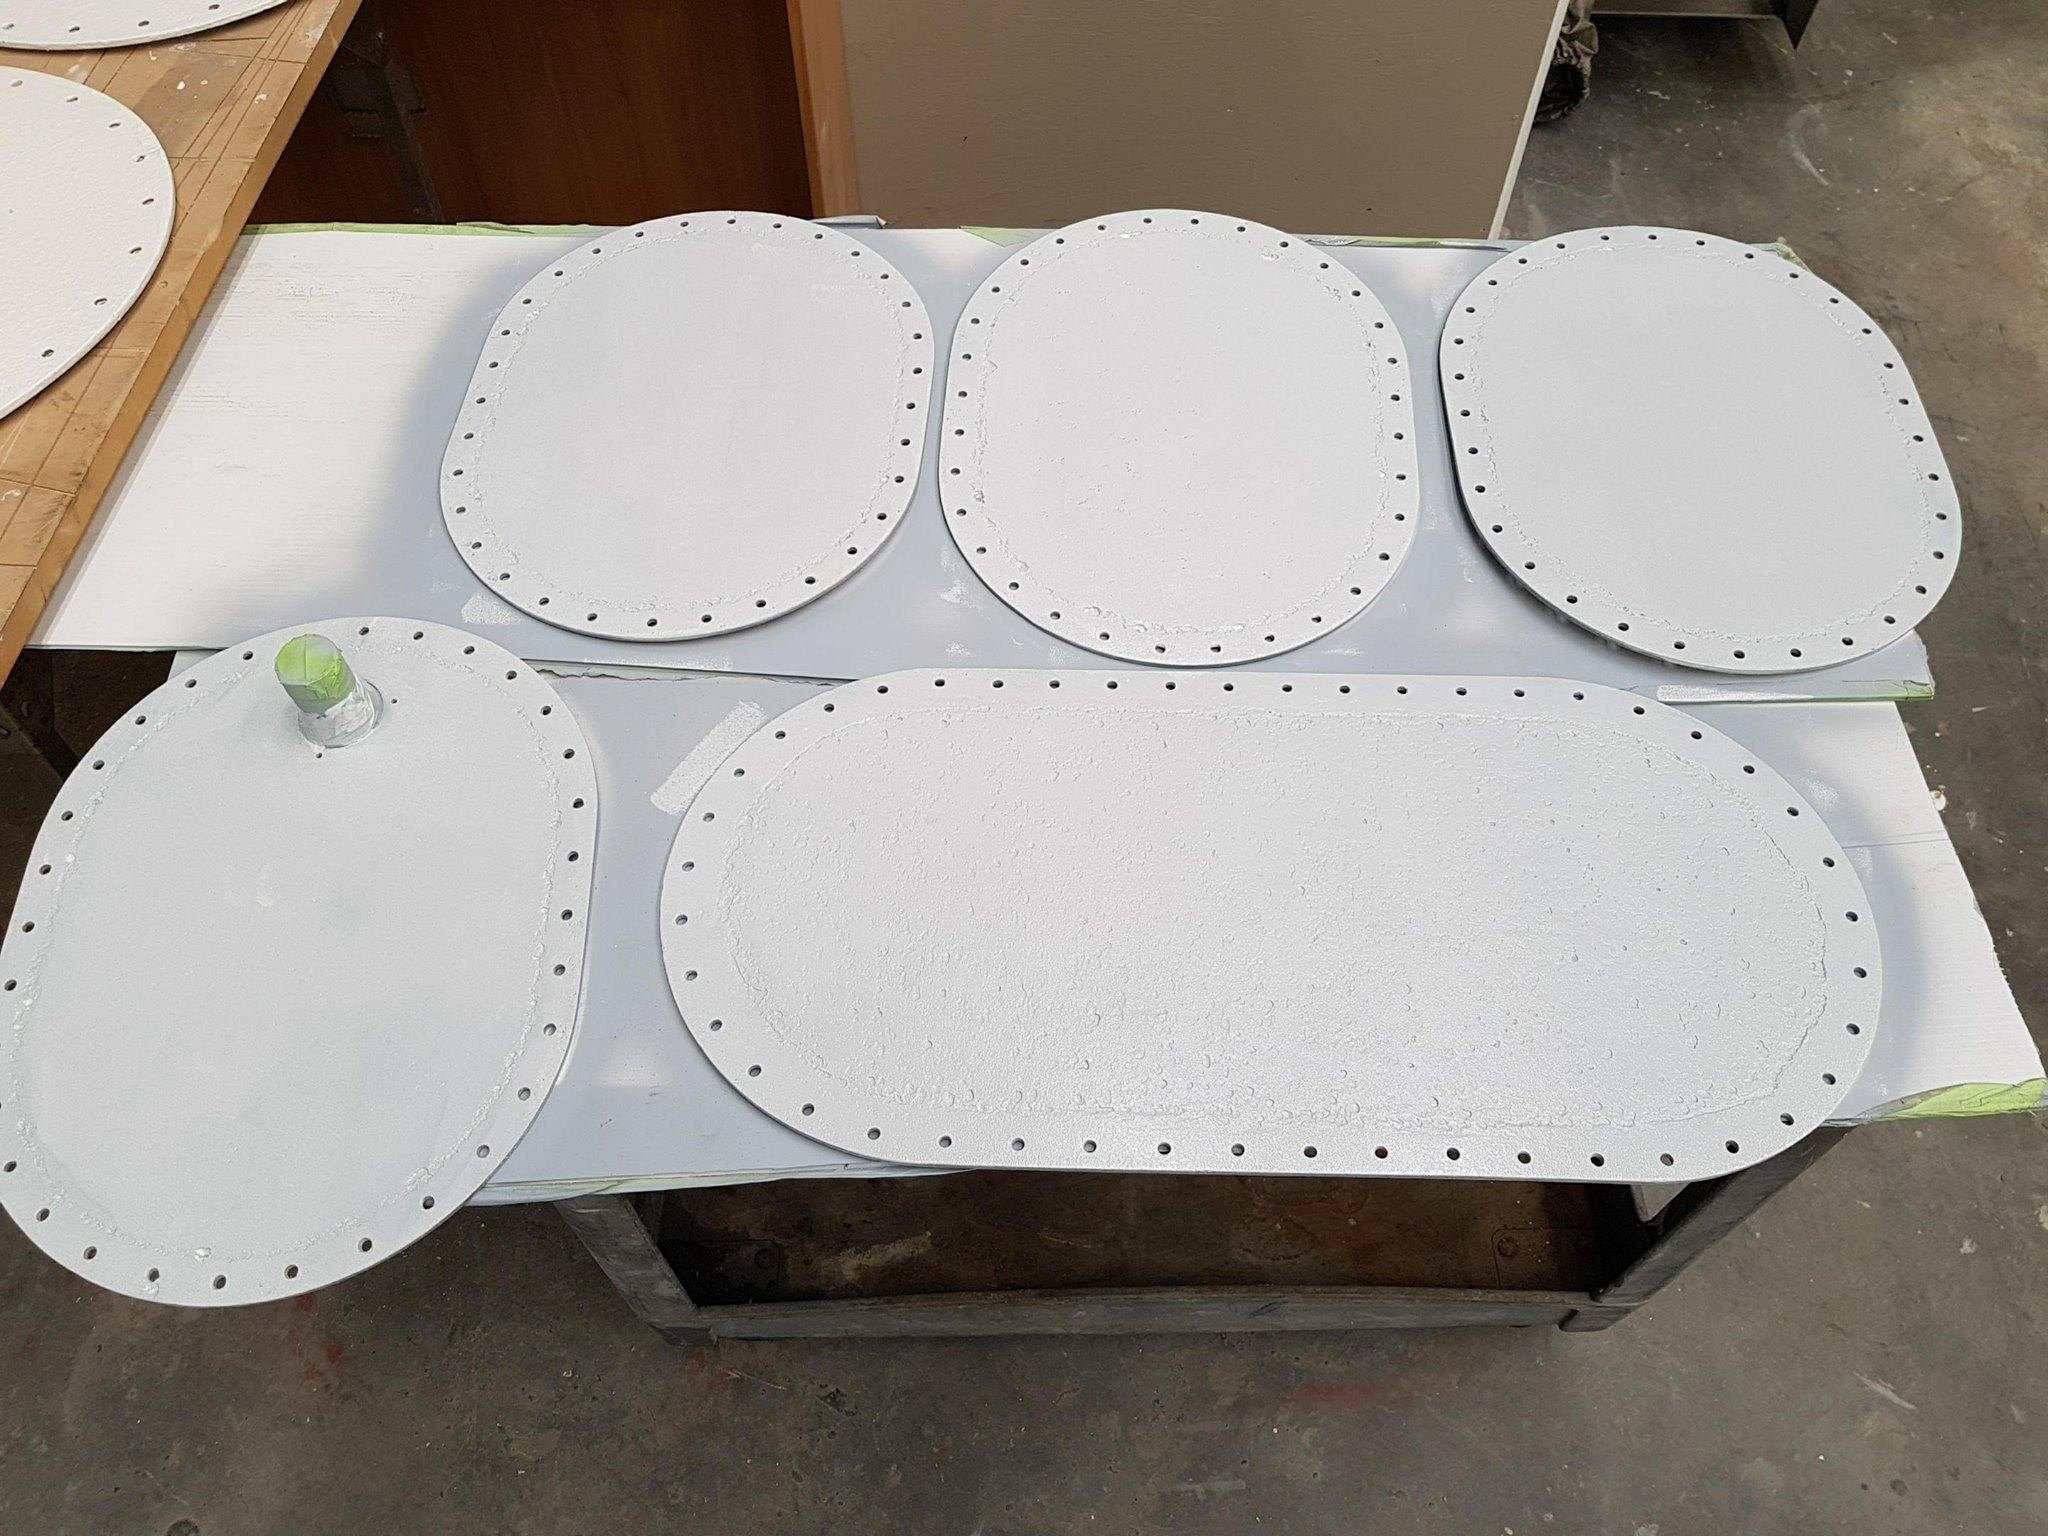 TANK LIDS REFINISHING AFTER